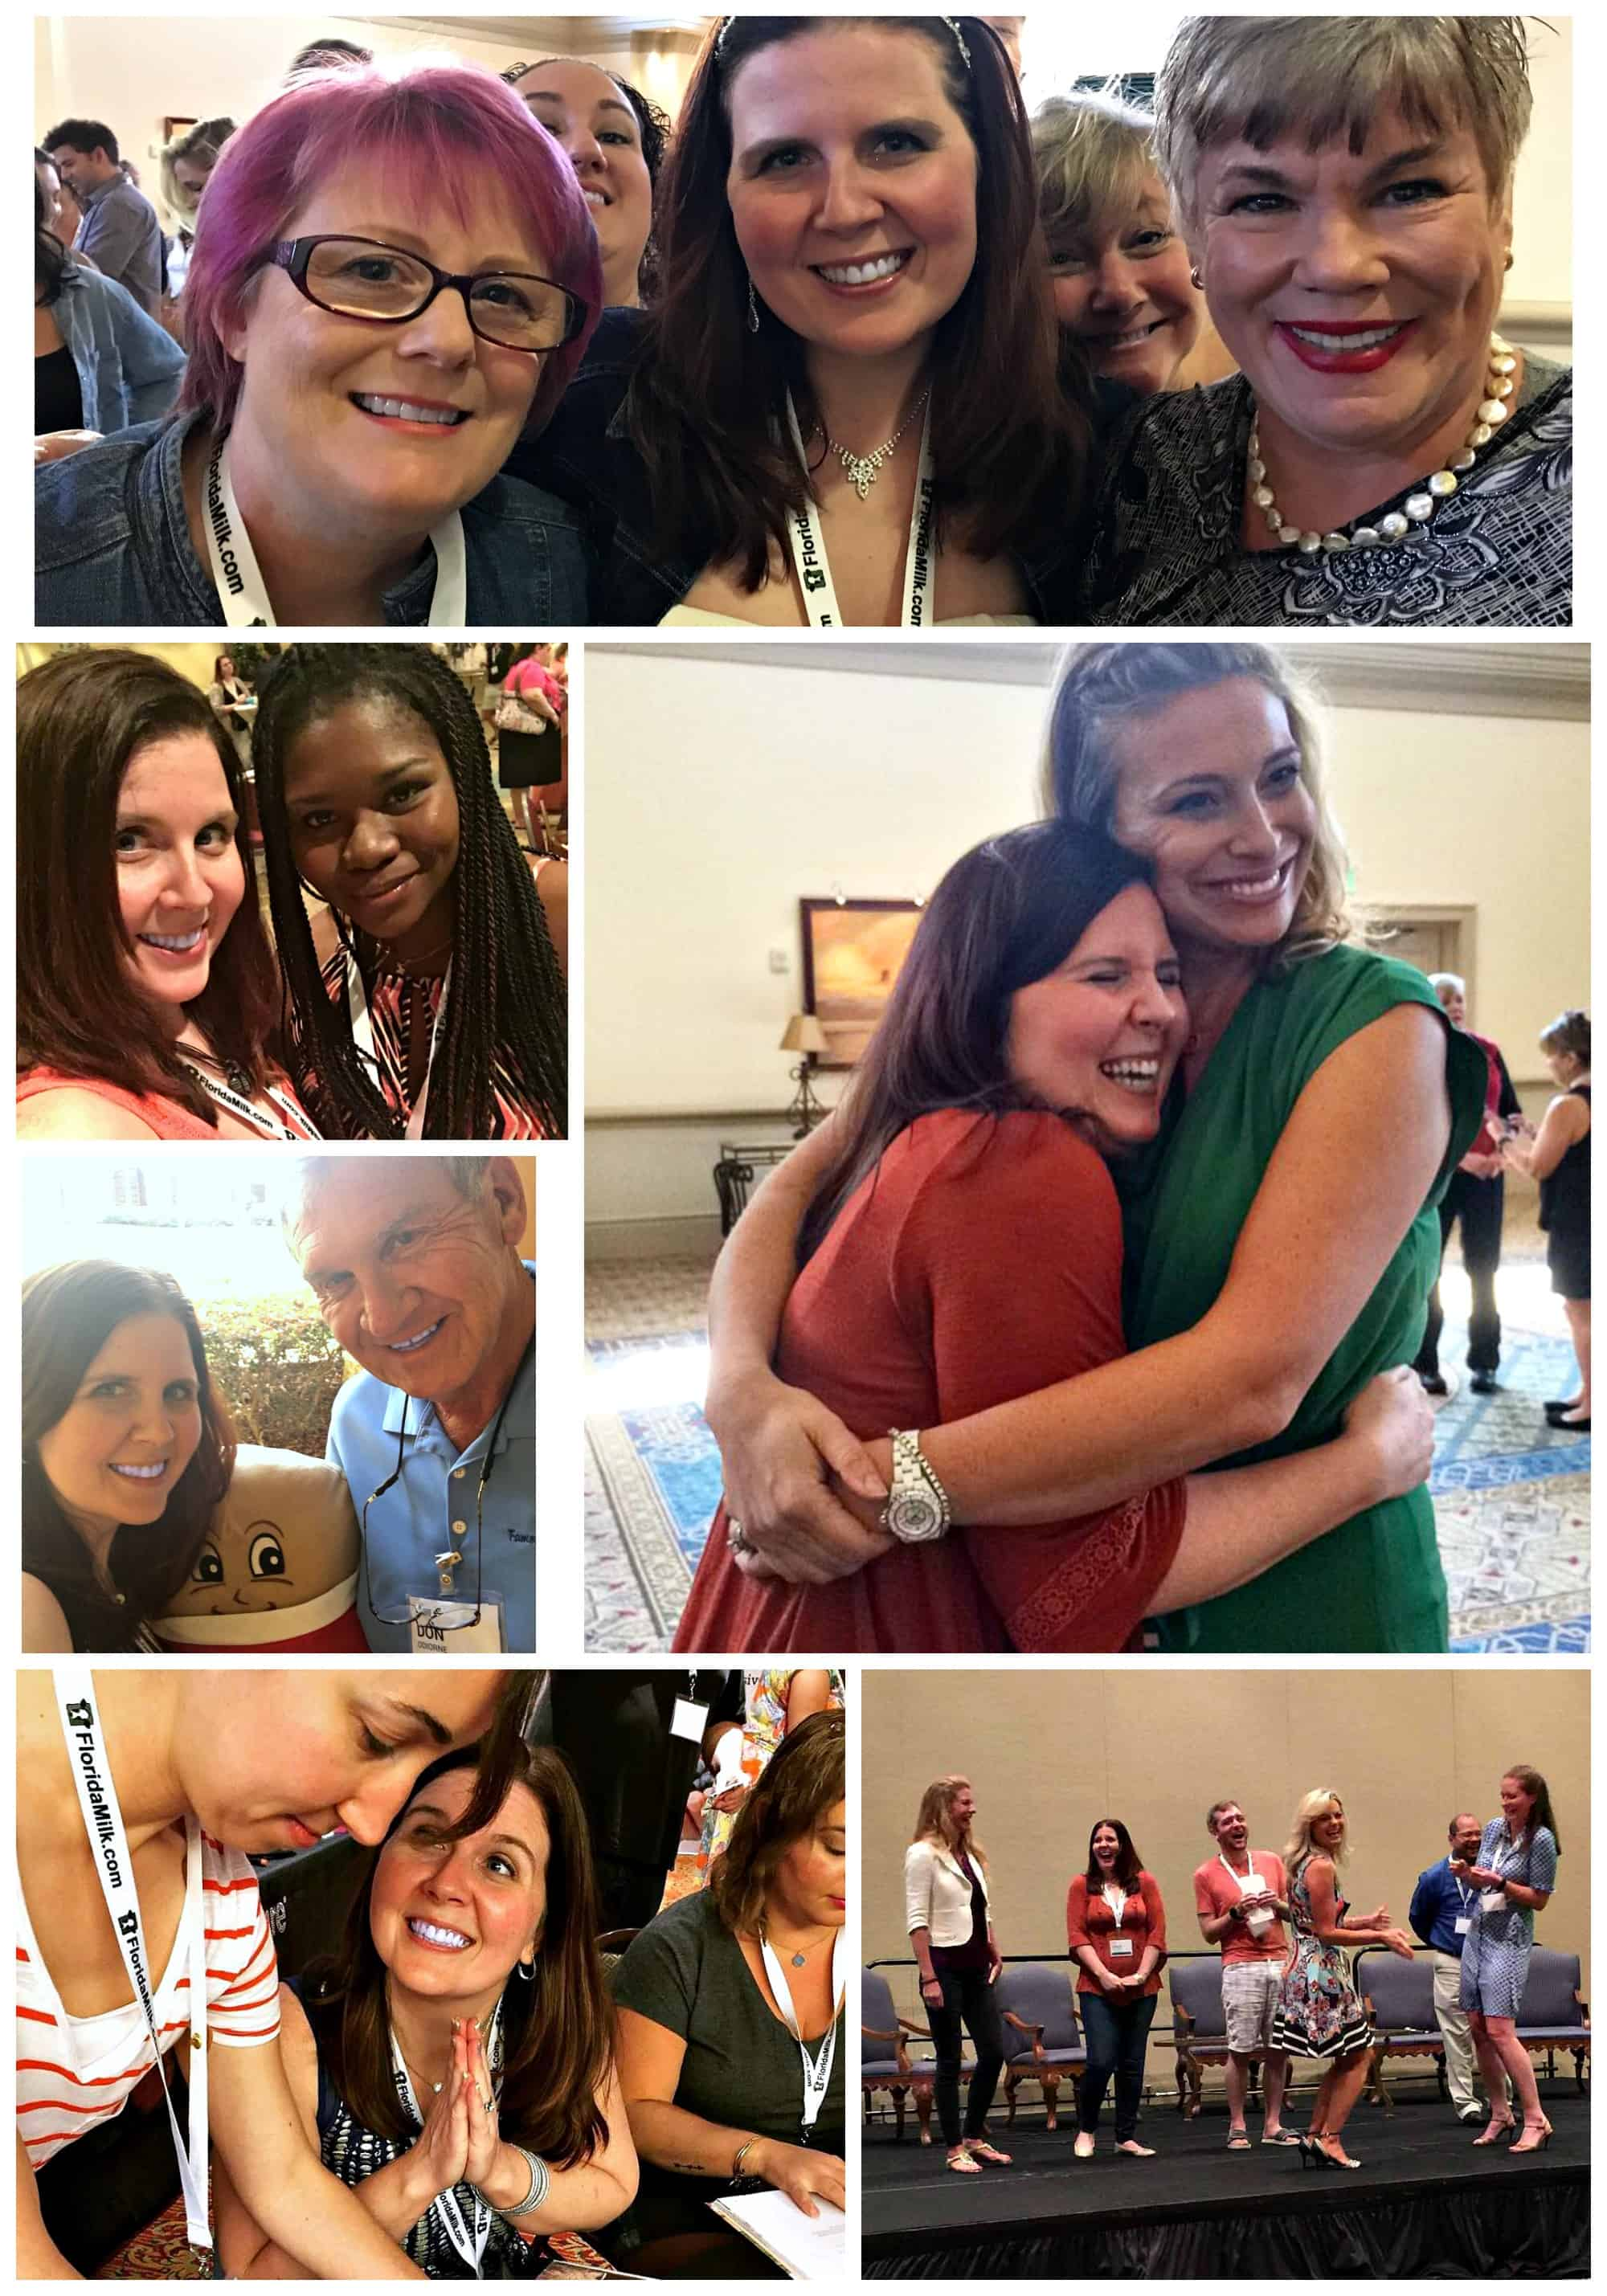 How to Succeed at #FWCon Without Really Trying| Recap - #FWCon Meet